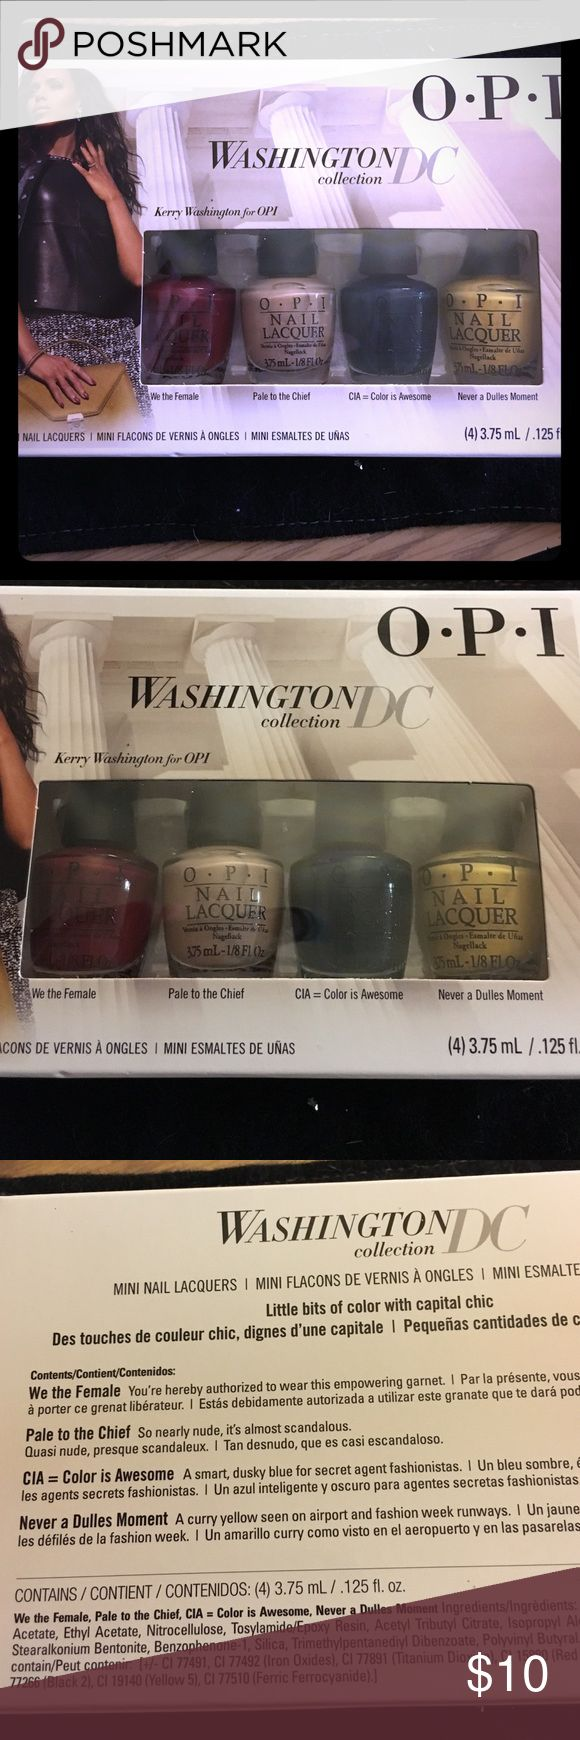 Opi Washington DC Gift Set Opi's Washington DC Mini Gift Set! Perfect gift for anyone, limited release! Includes: We the Female, Pale to the Chief, CIA = Color Is Awesome, and Never a Dulles Moment. Opi Other